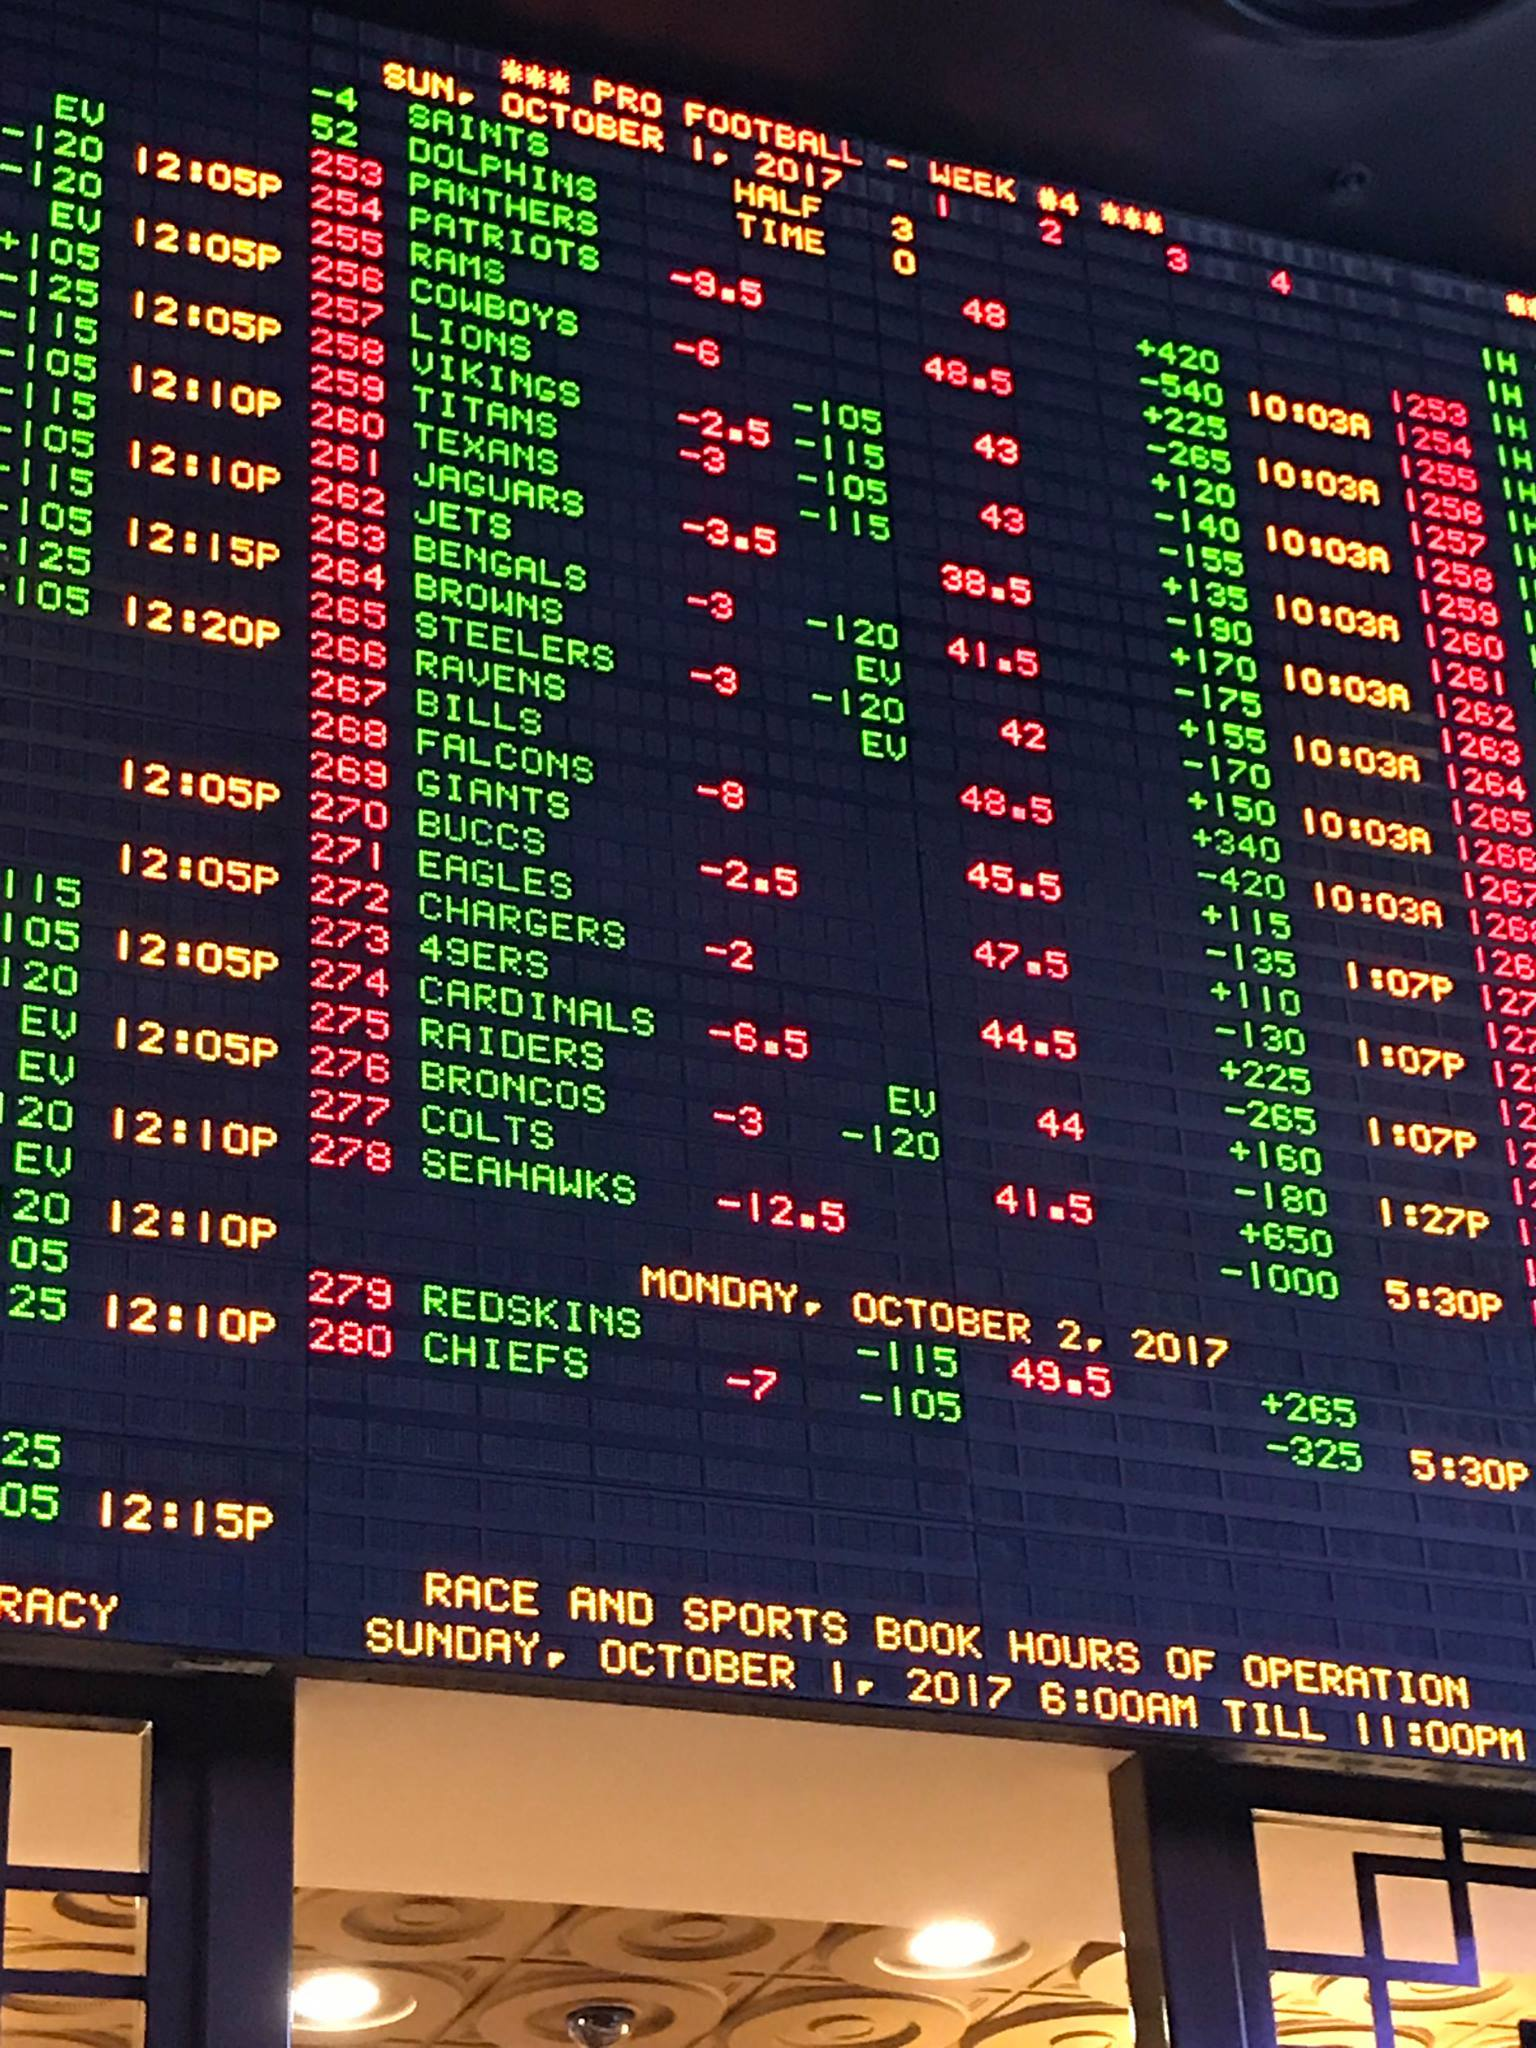 Picture of betting odds at Caesars sportsbook